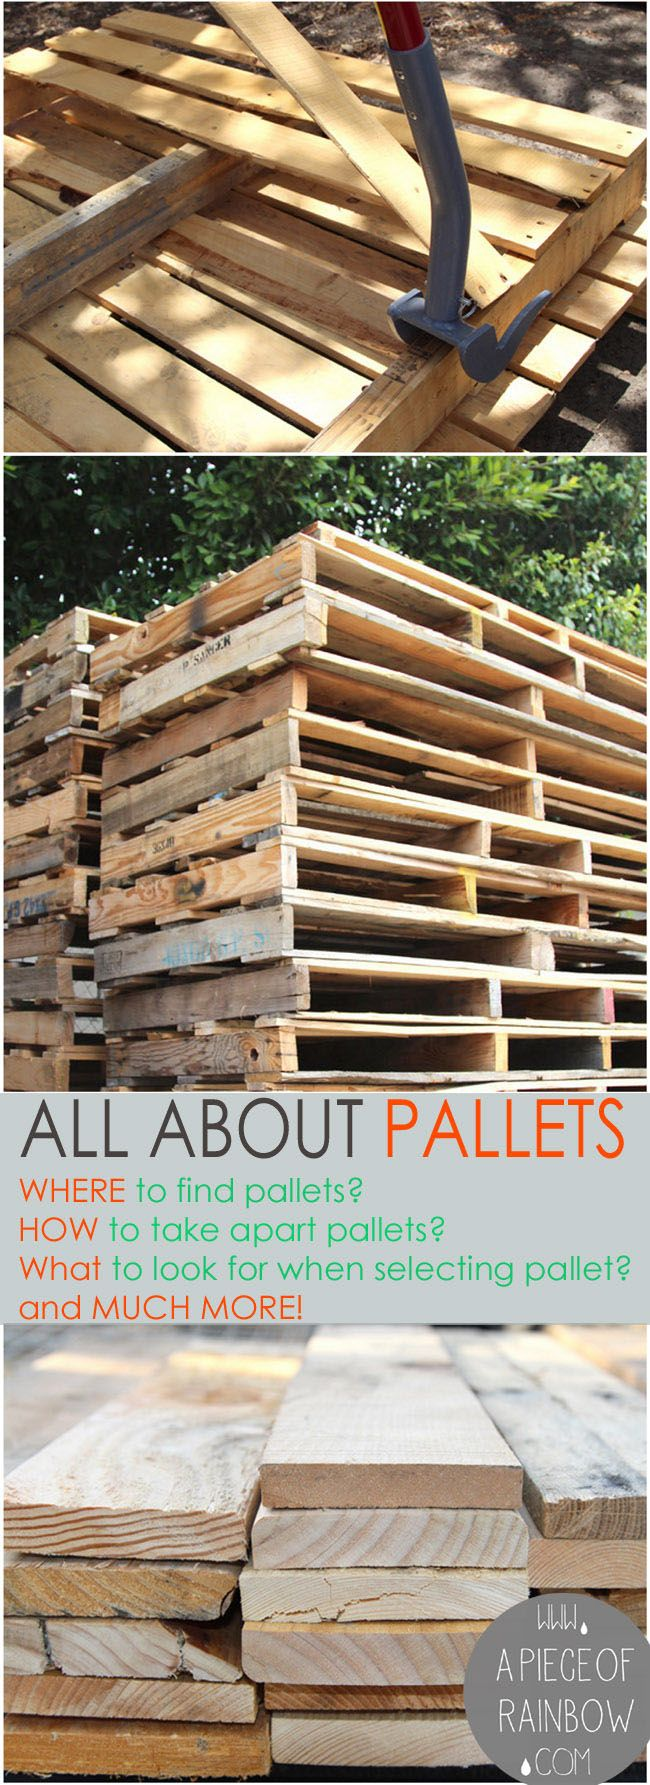 Loads of tips All About Pallets! - Where to find pallets, how to select & take apart pallets, working with pallets, and pallet project ideas! #diypalletfurniture